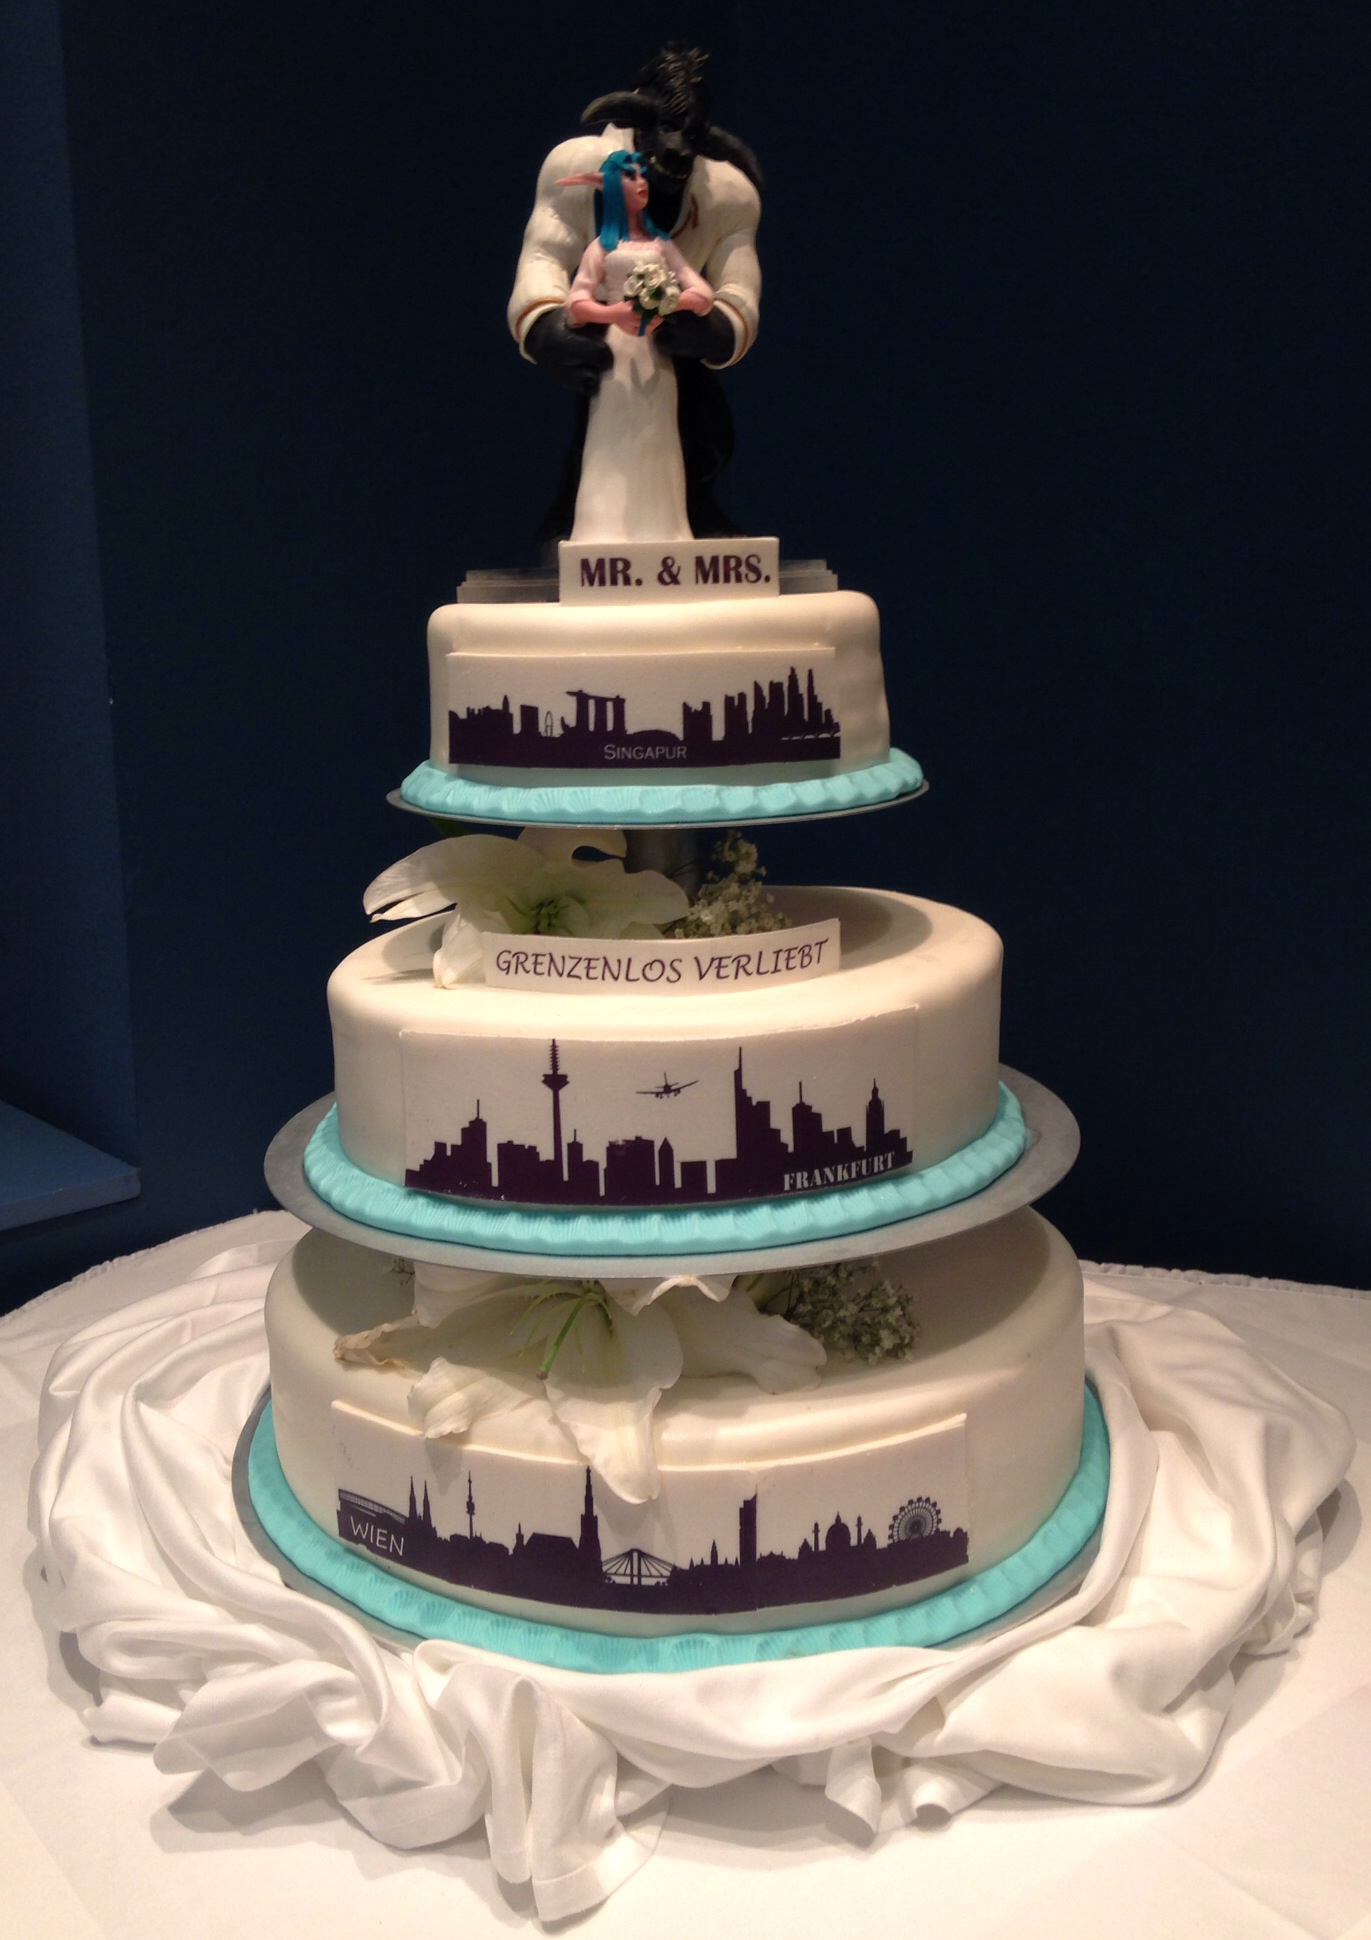 And Finally…..the Wedding Cake!